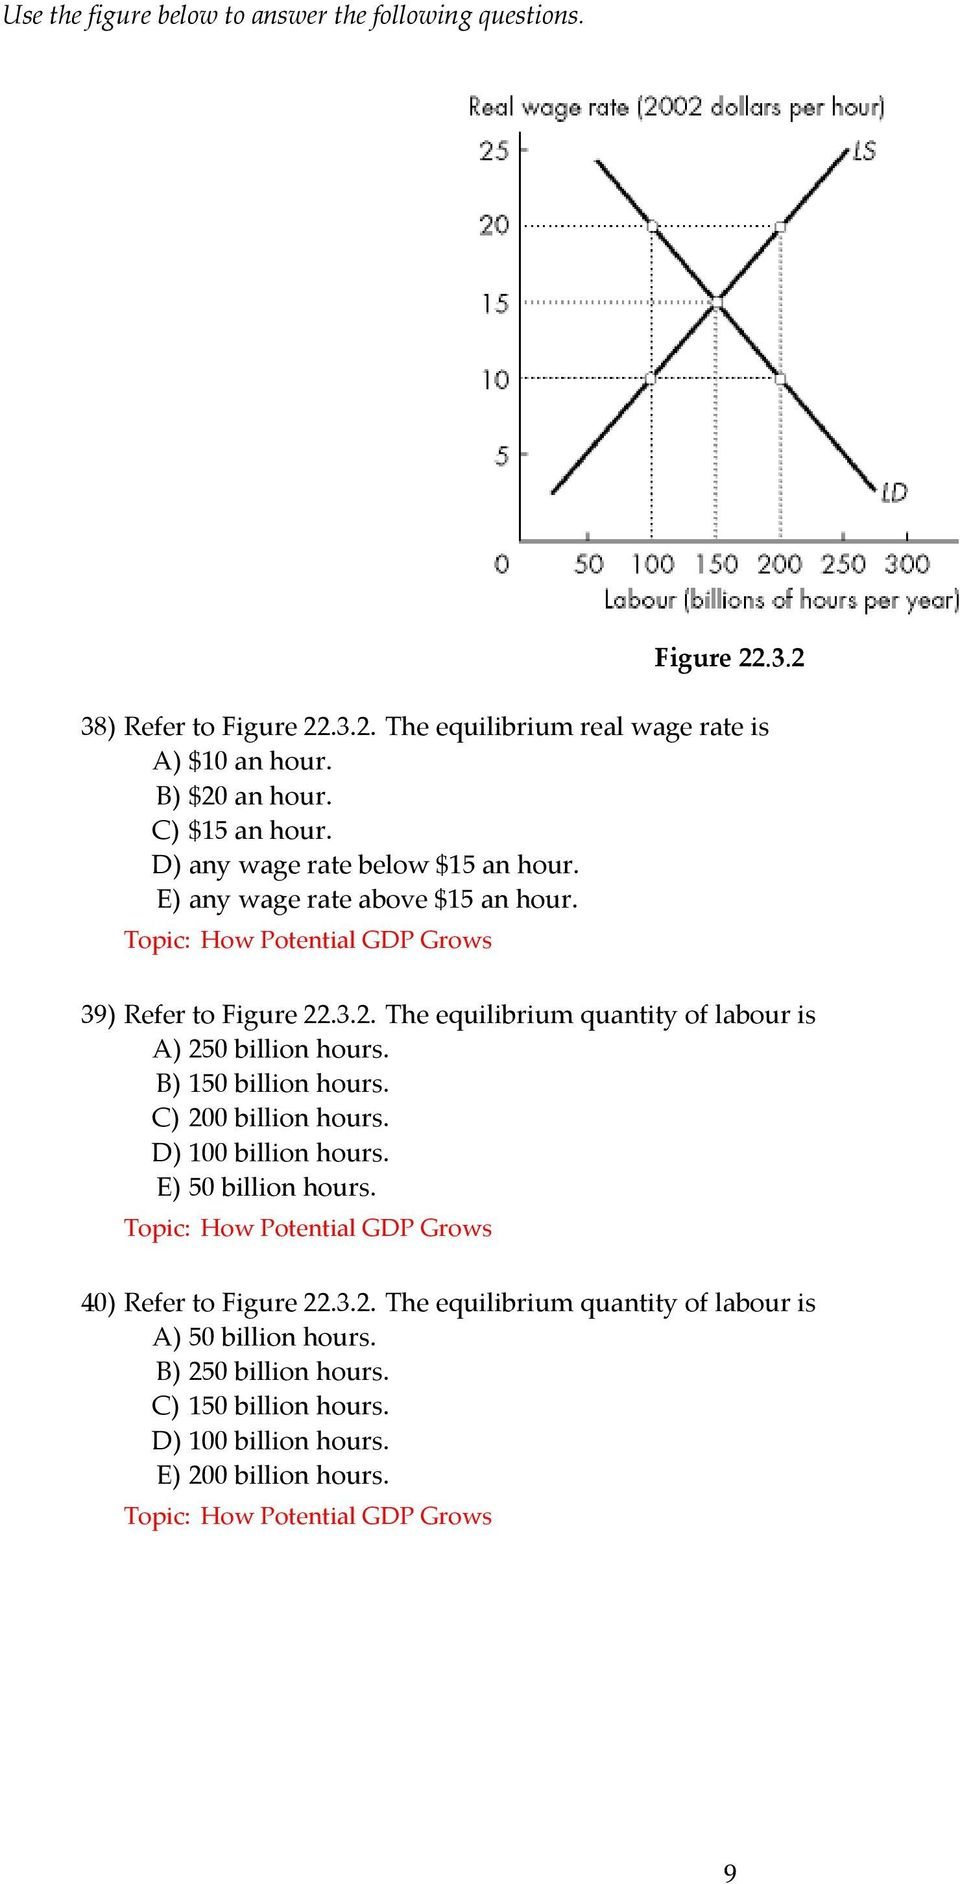 B) 150 billion hours. C) 200 billion hours. D) 100 billion hours. E) 50 billion hours. 40) Refer to Figure 22.3.2. The equilibrium quantity of labour is A) 50 billion hours.